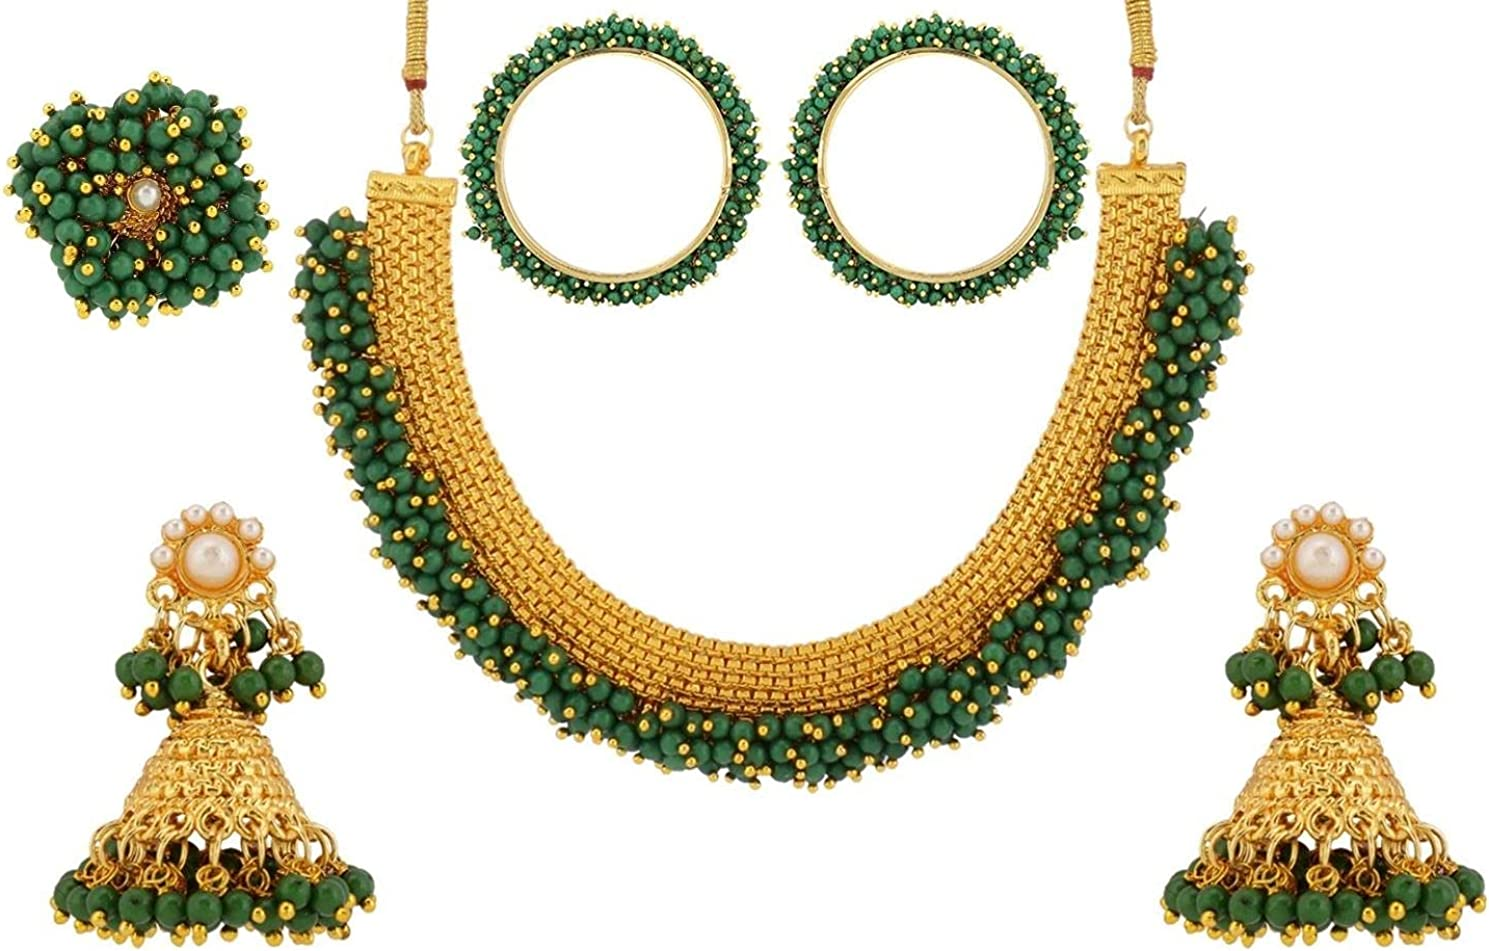 Efulgenz Indian Bollywood 14 K Gold Plated Faux Pearl Bead Bridal Choker Necklace Earrings Bracelet Bangles Ring Jewelry Set